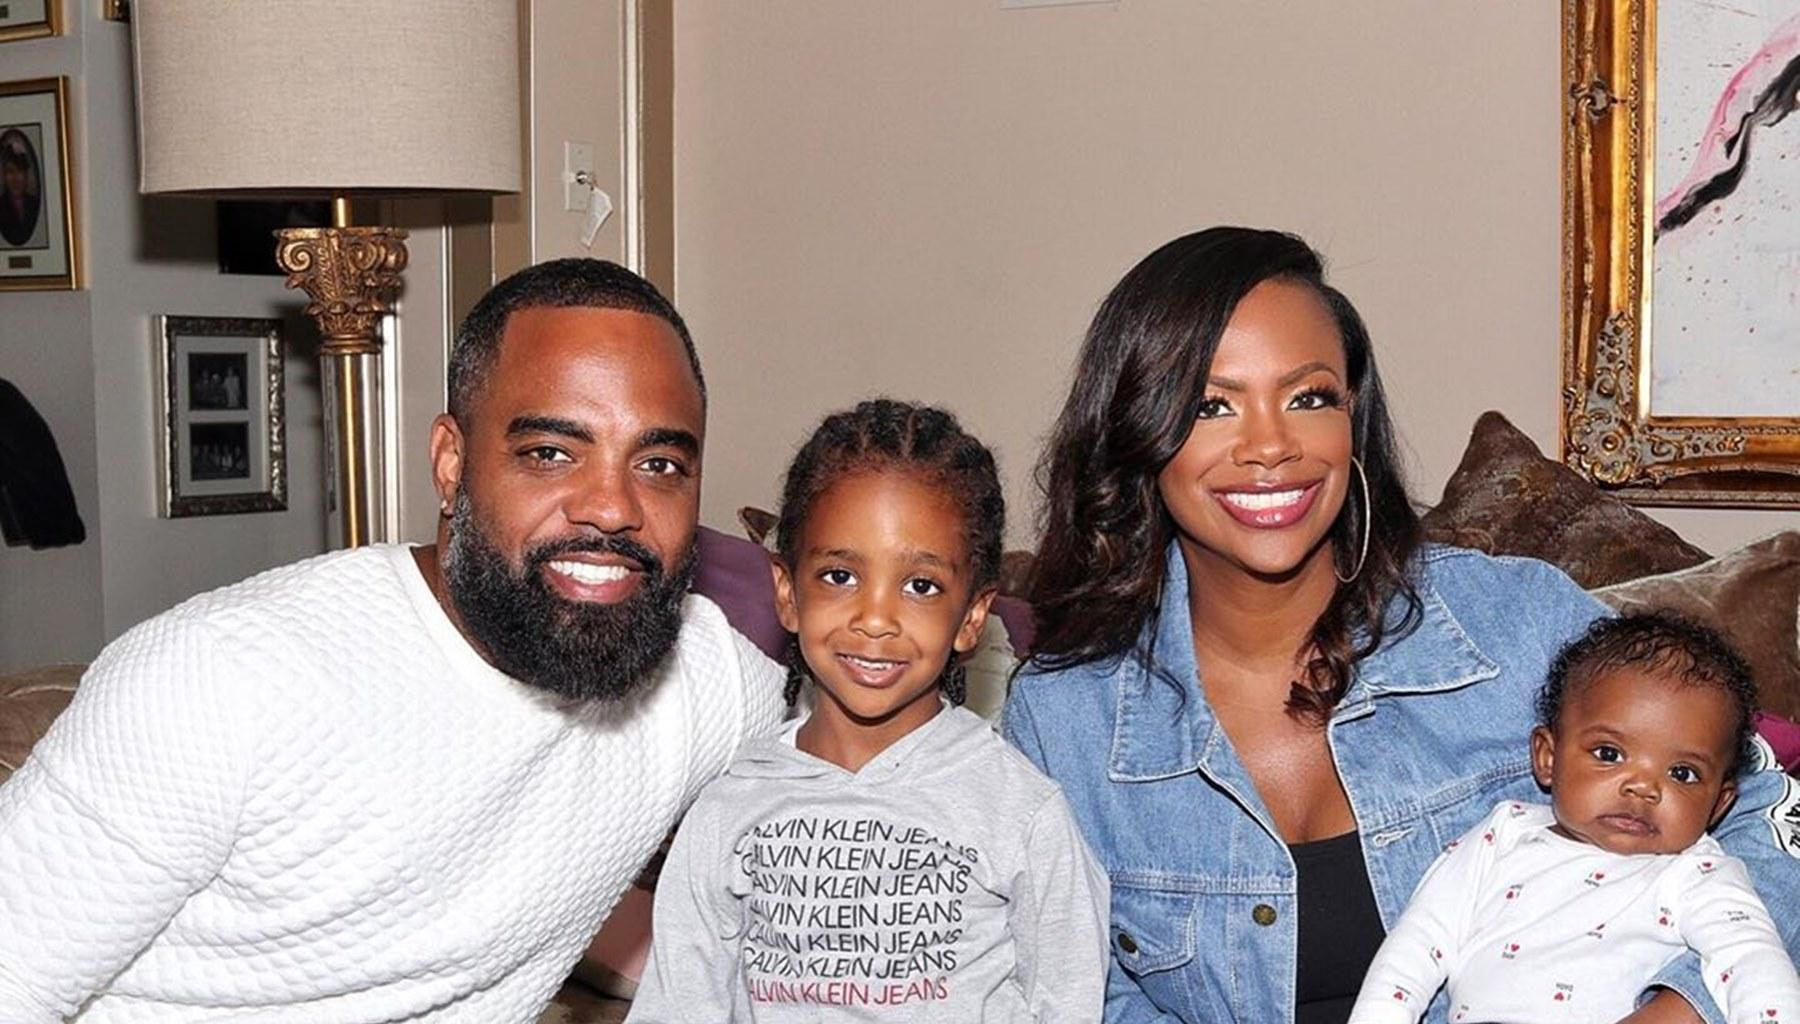 Todd Tucker Shows His And Kandi Burruss' Daughter, Blaze's Room - It's Todd's Design